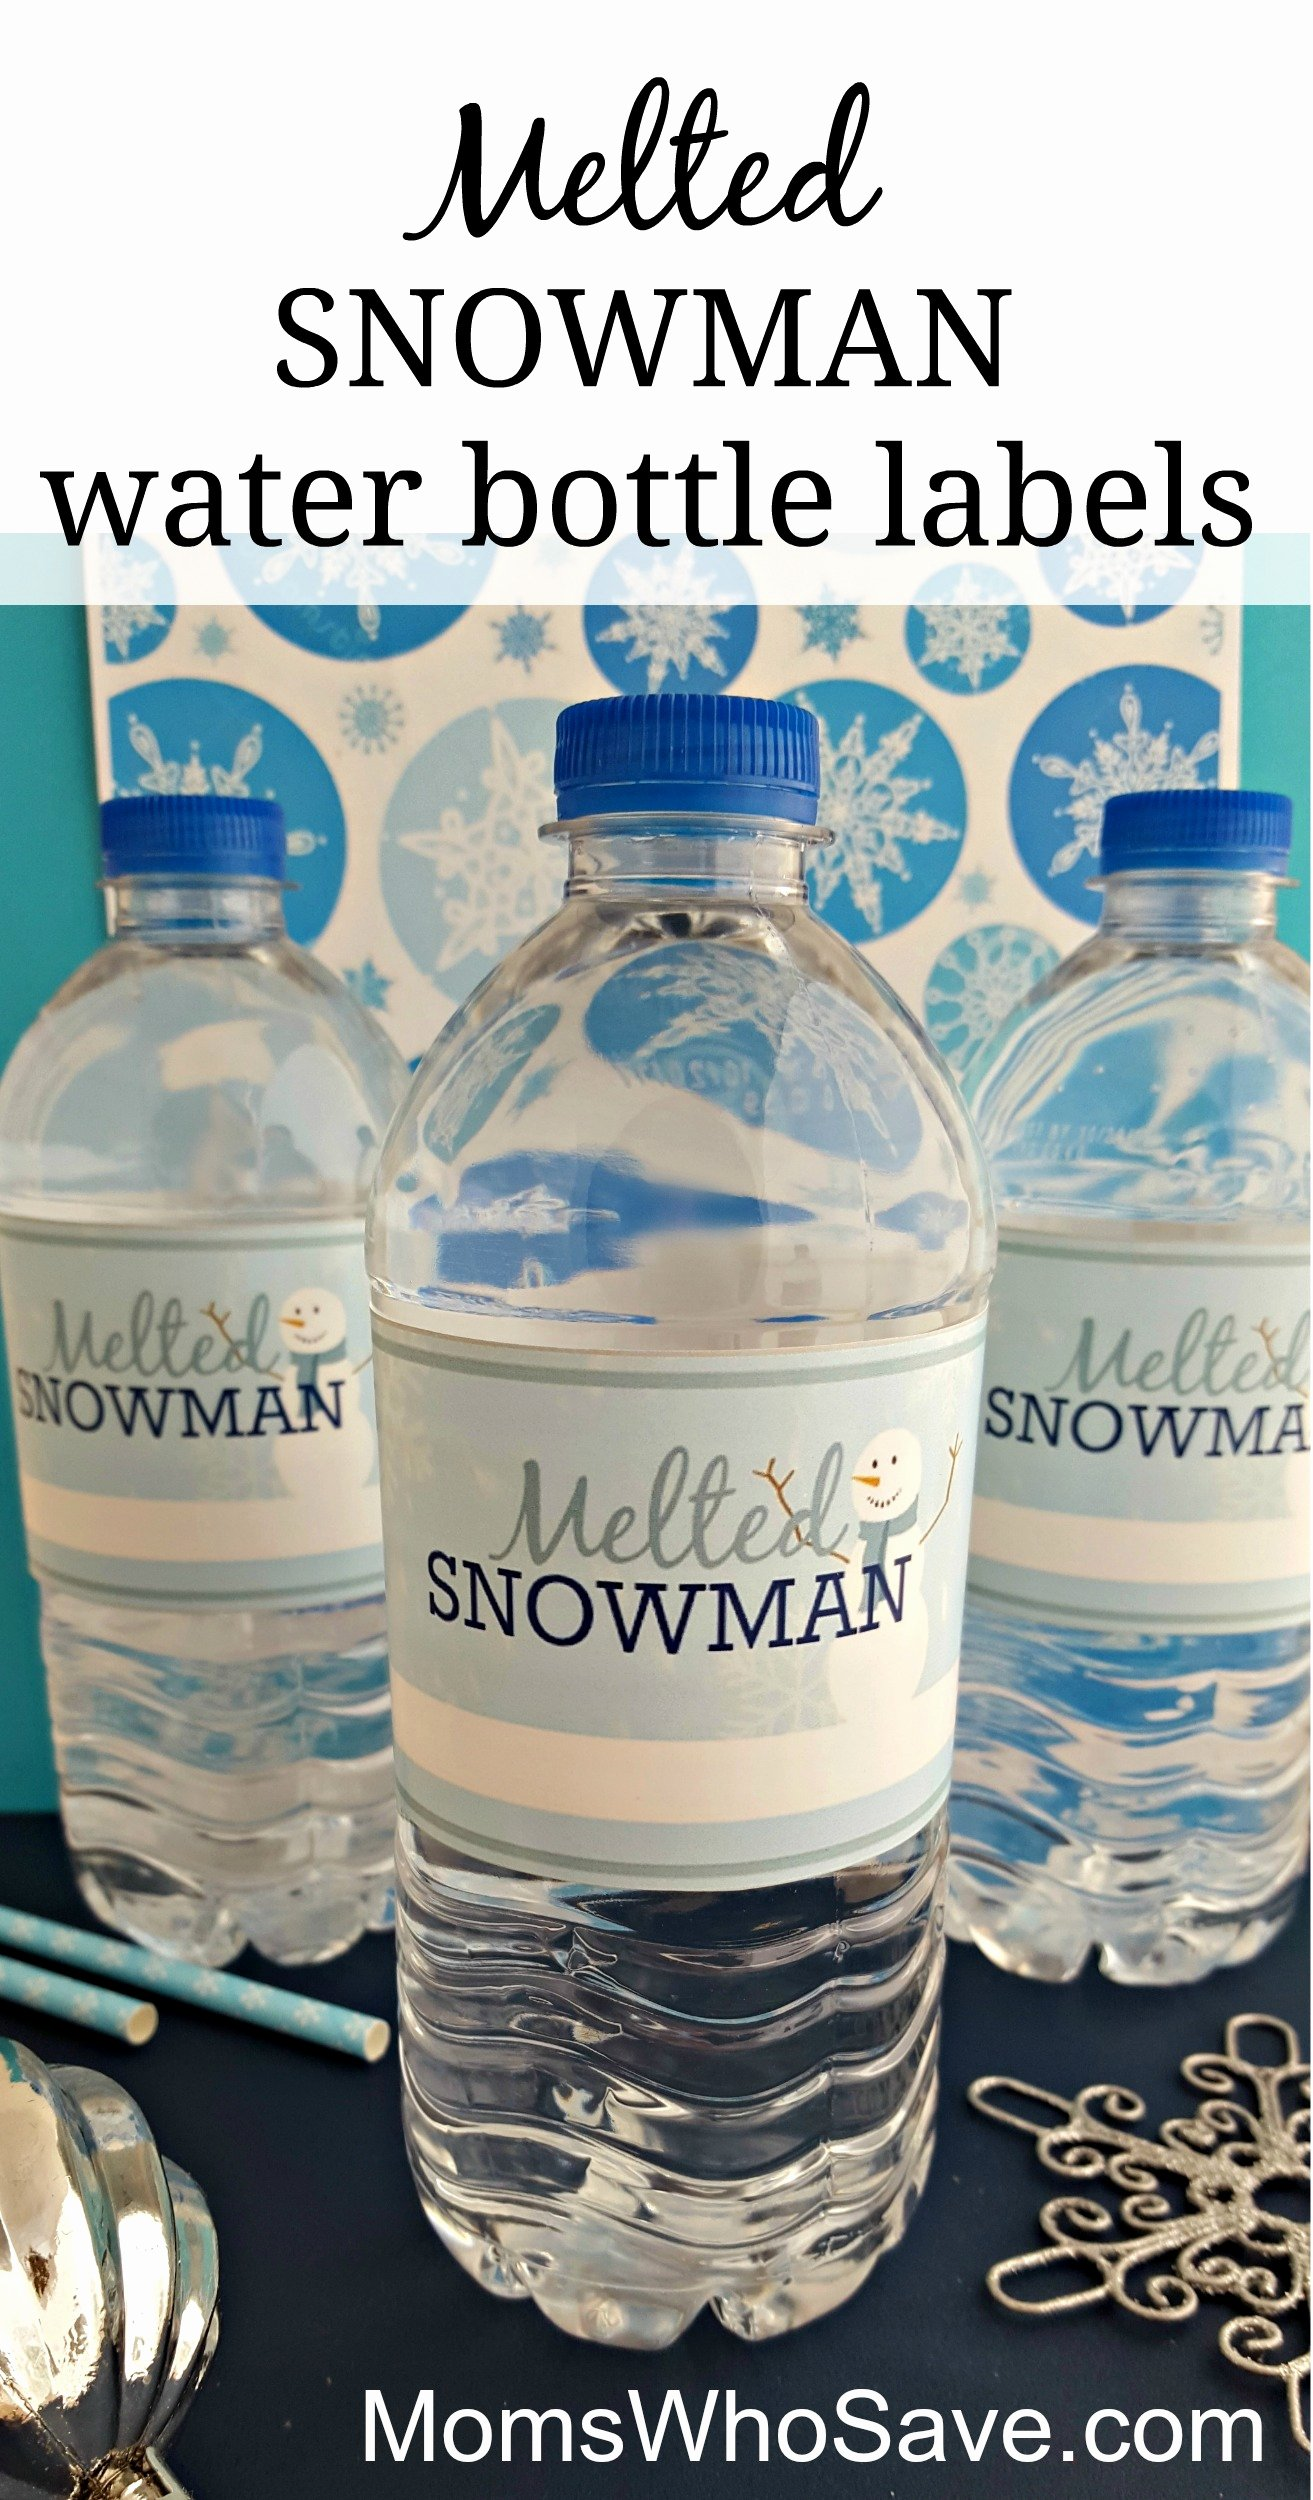 Avery Labels for Water Bottles Unique Easy Diy Free Printable Melted Snowman Water Bottle